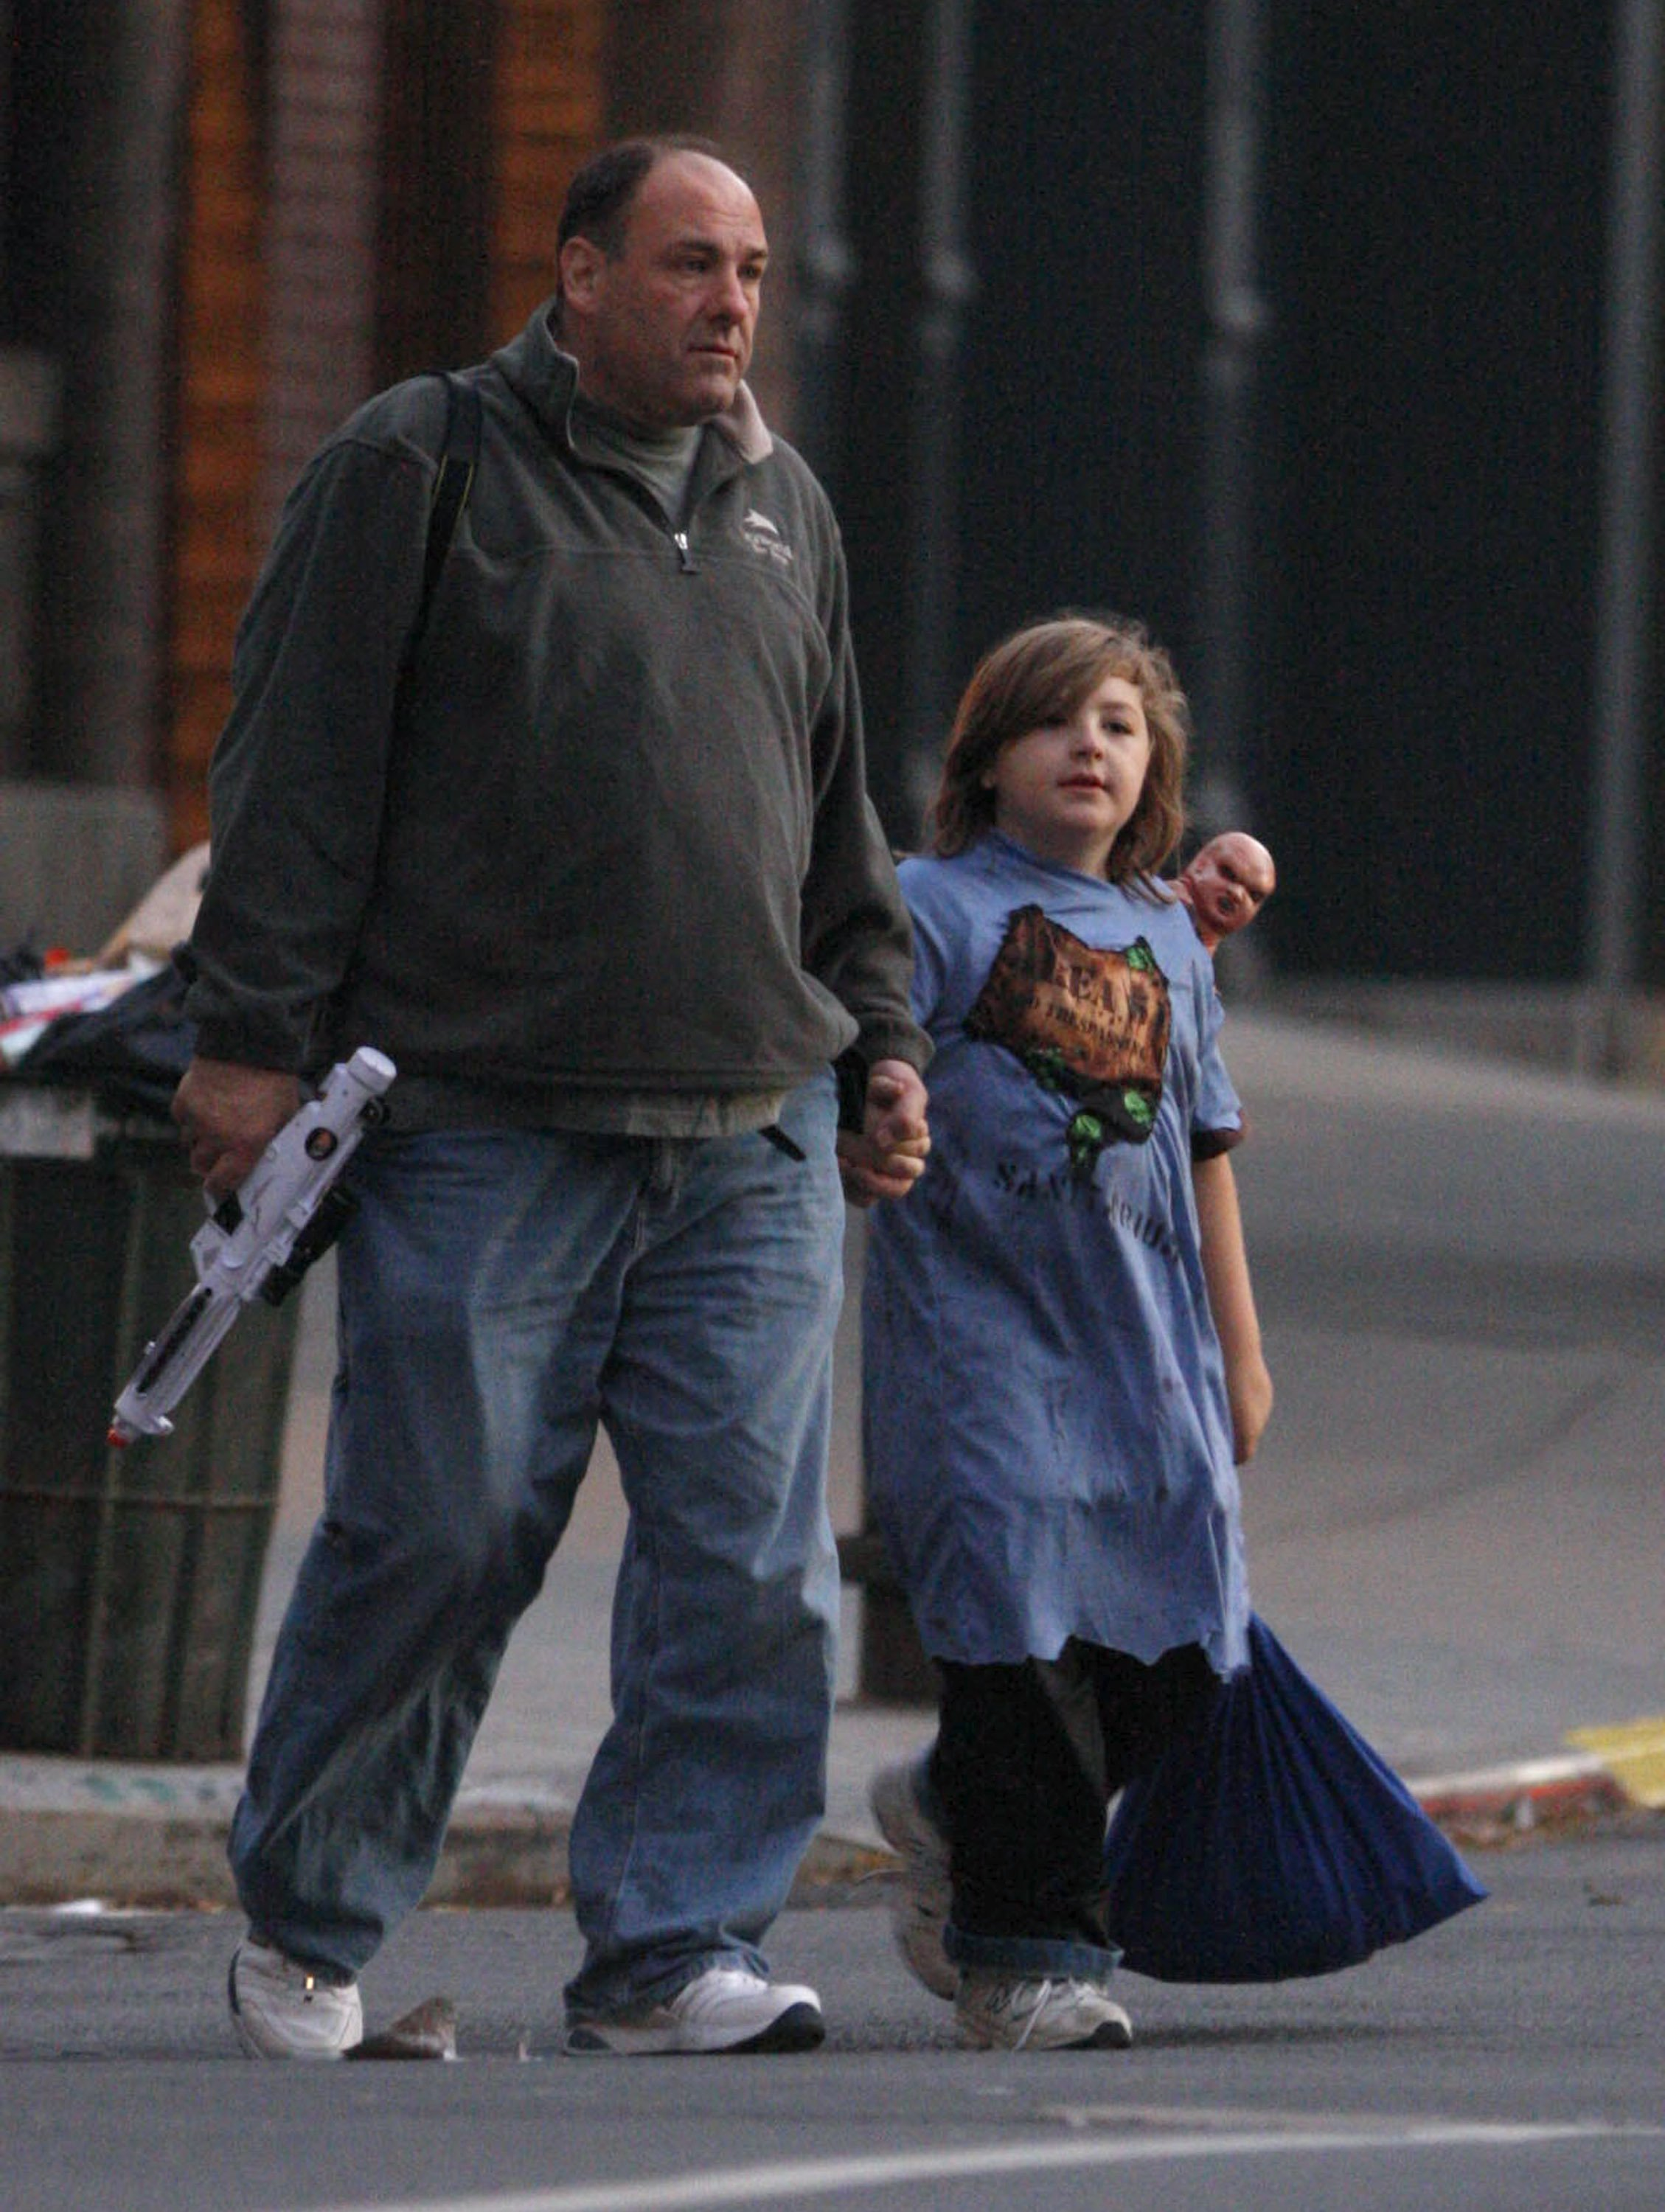 James and a young Michael Gandolfini go Trick-or-Teating in New York, October, 2008.   Photo: Getty Images.